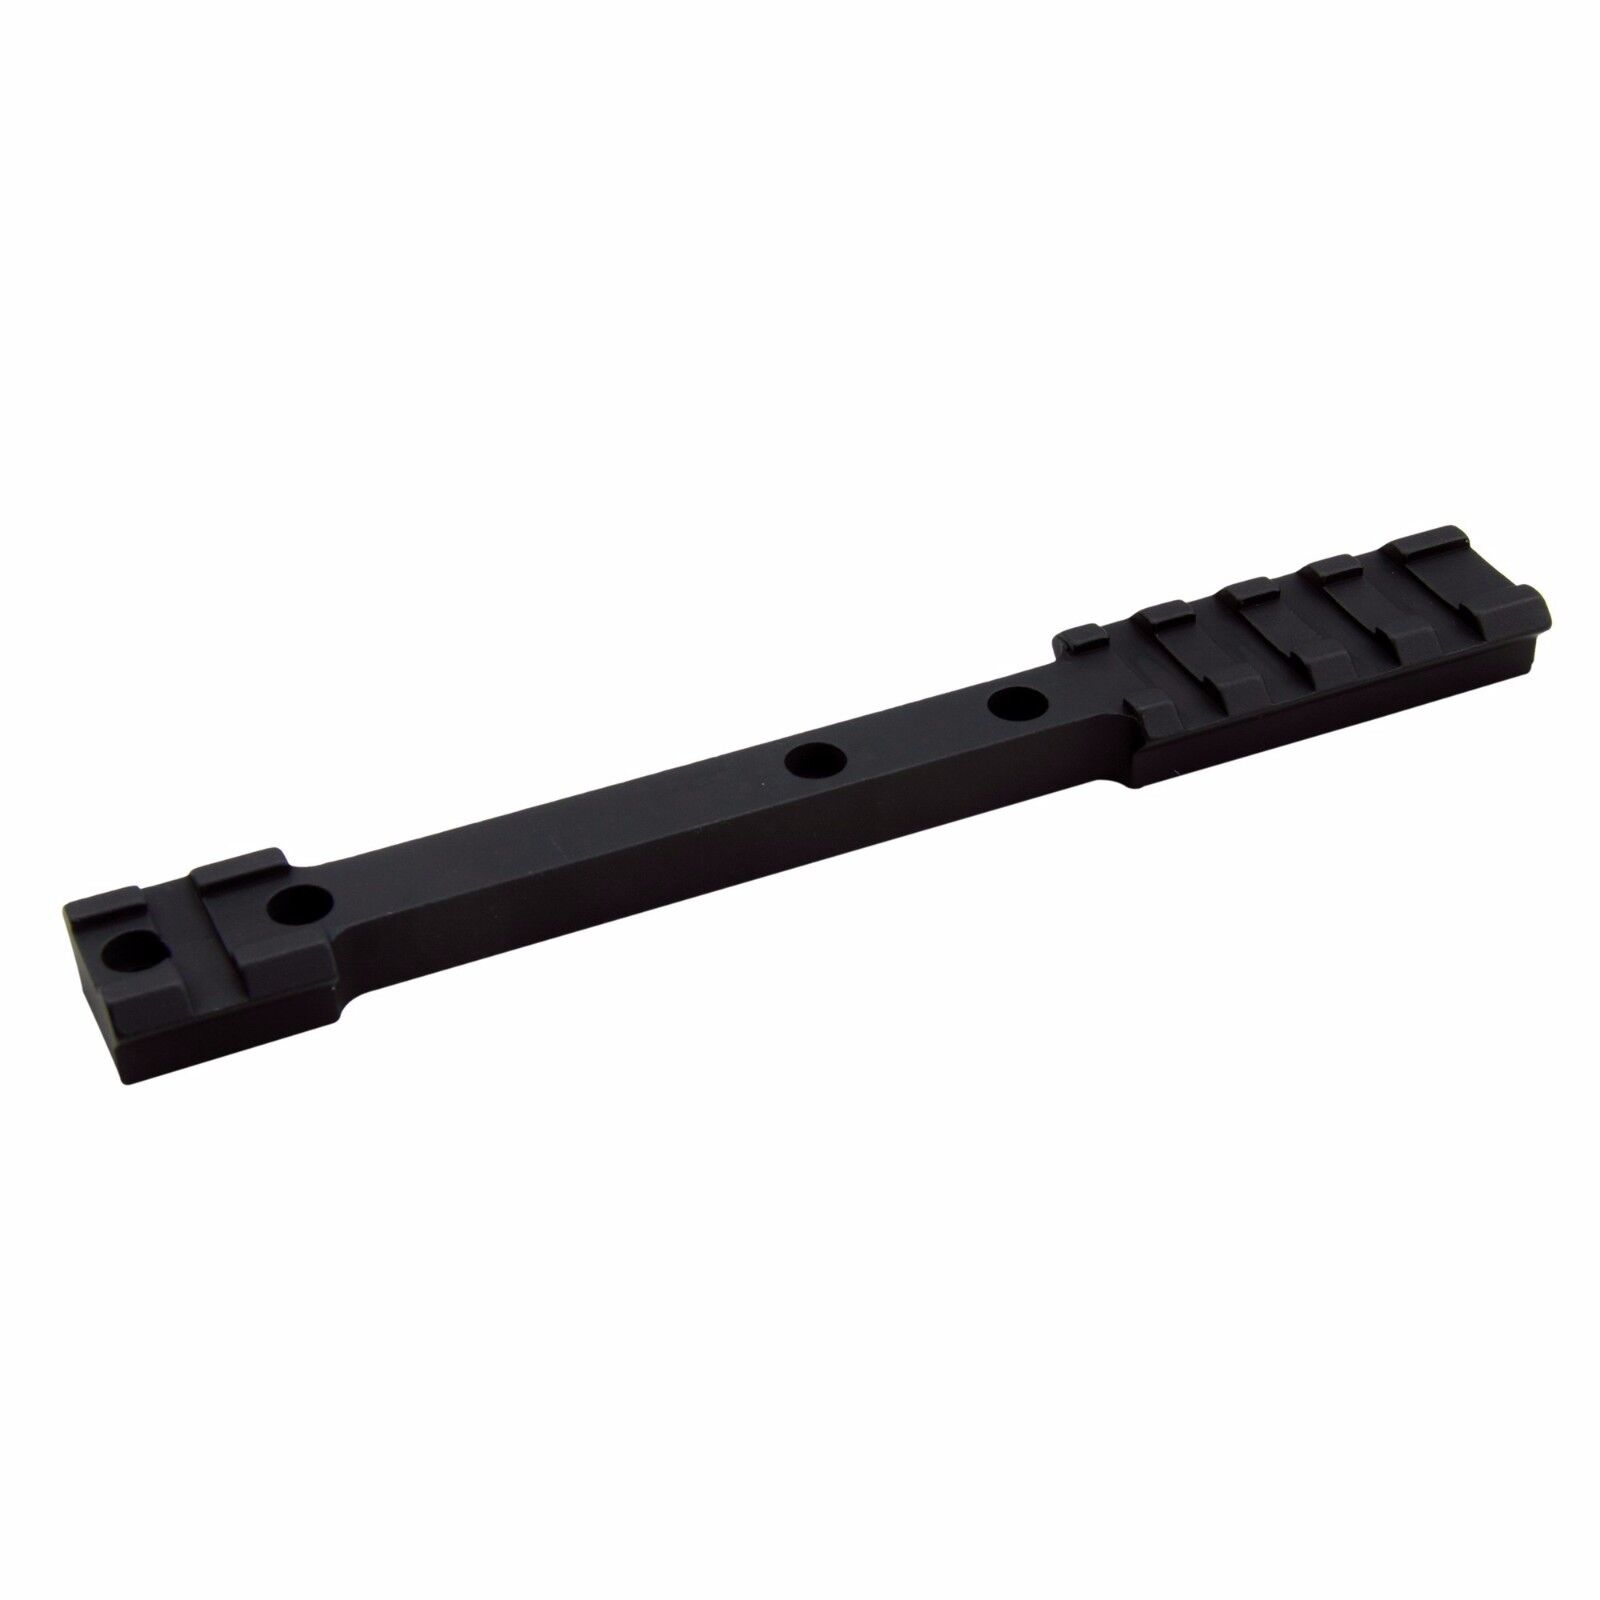 CCOP Spring USA Picatinny Steel Scope Mount Base for Spring CCOP Field 03 PB-SPR002 3d73da